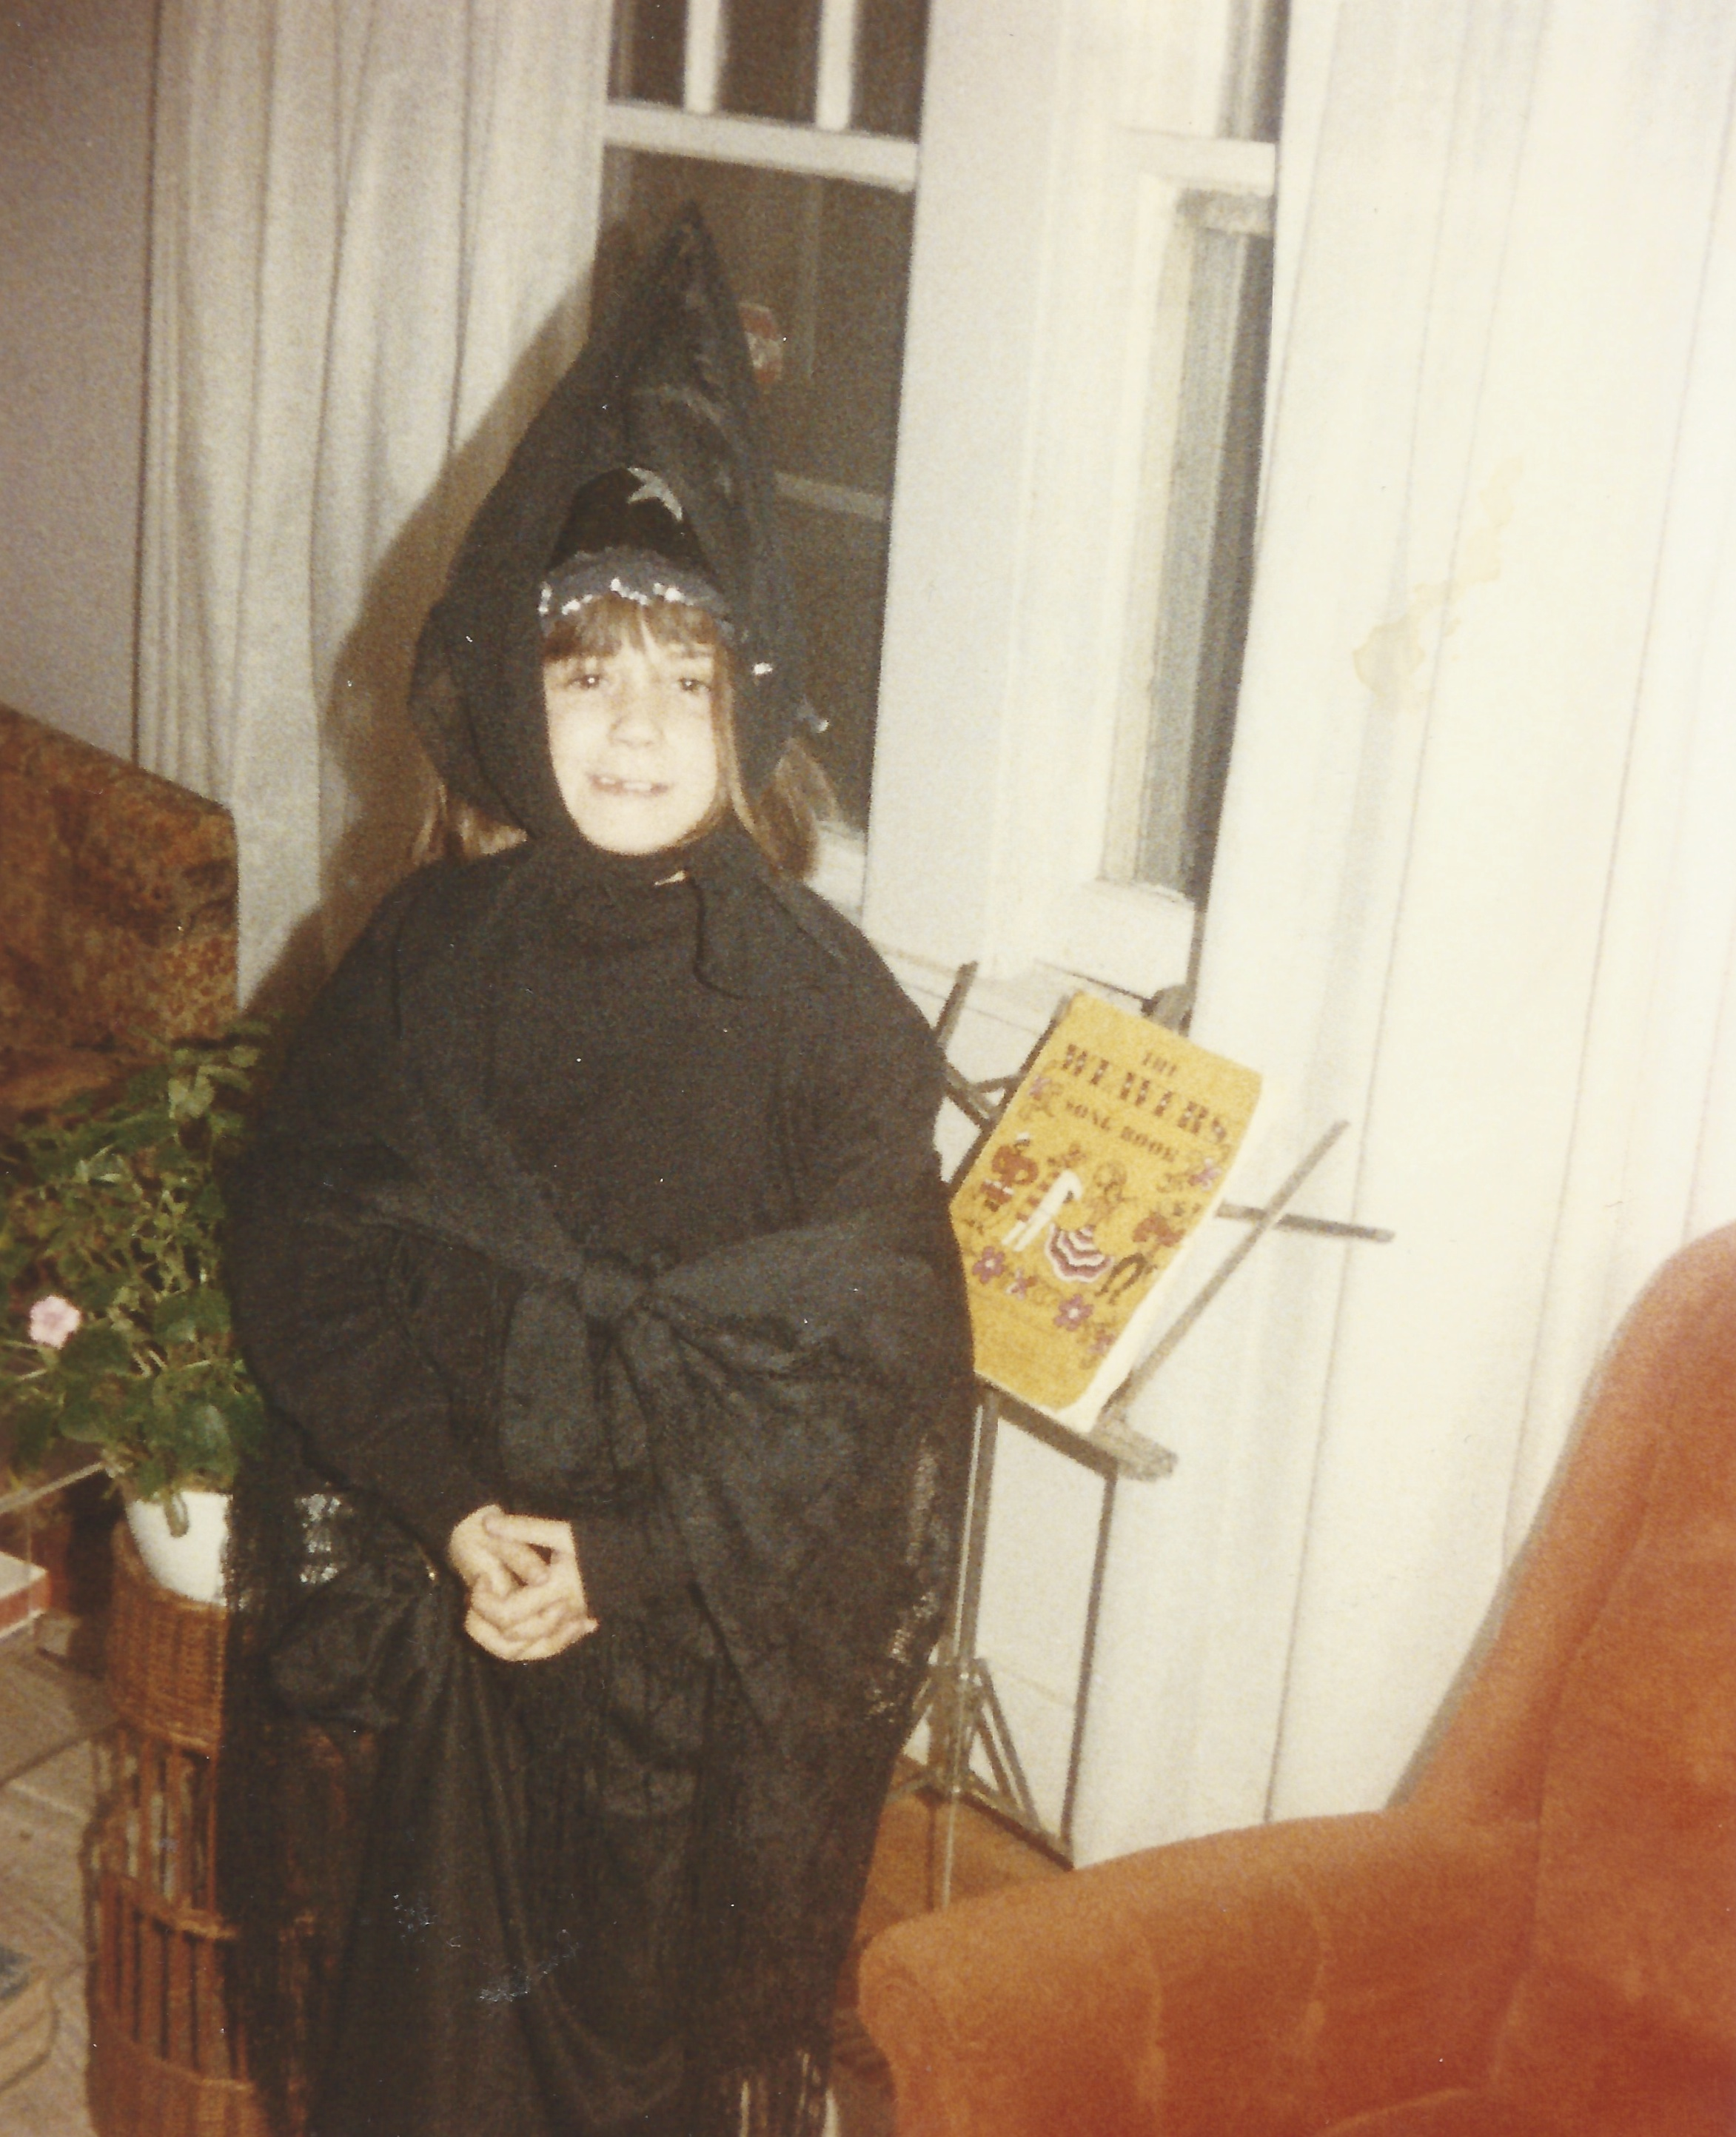 The author ready for tricking and treating